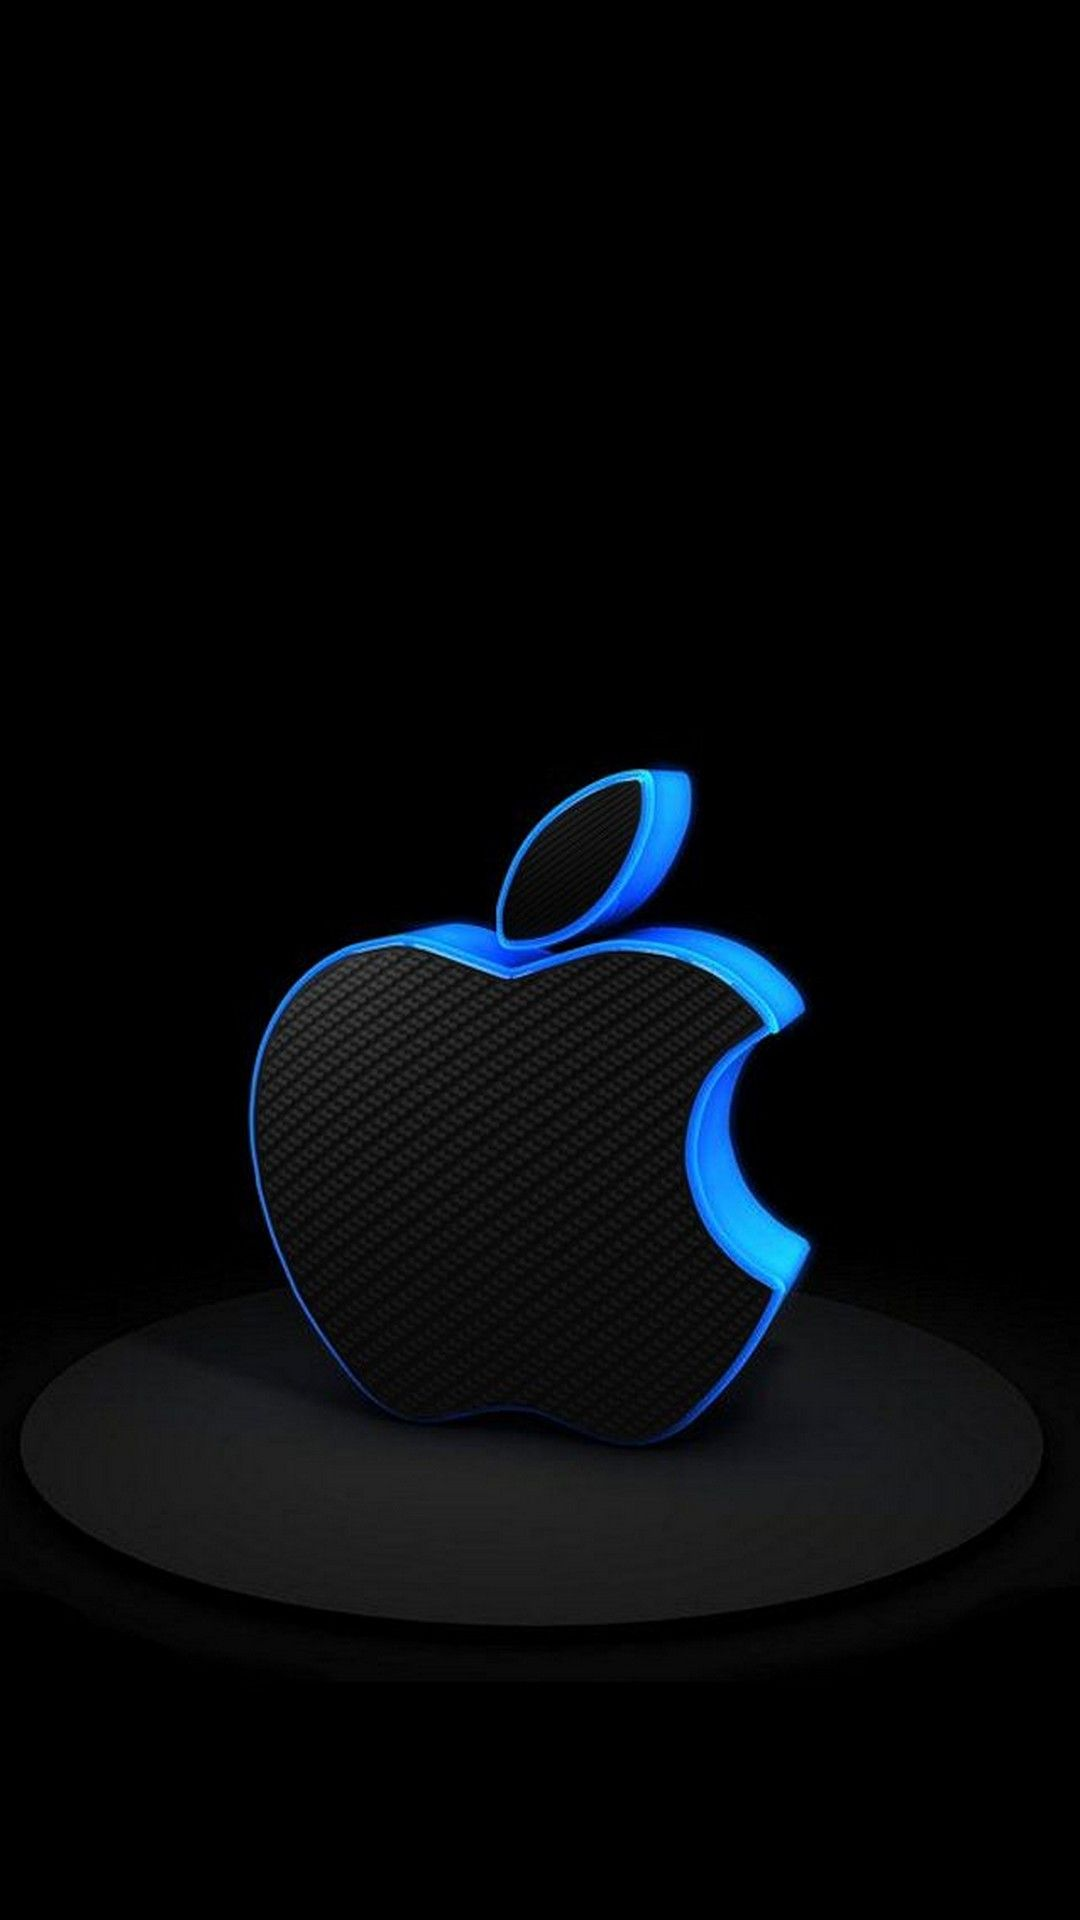 3D iPhone Logo Wallpaper Blue - Best iPhone Wallpaper